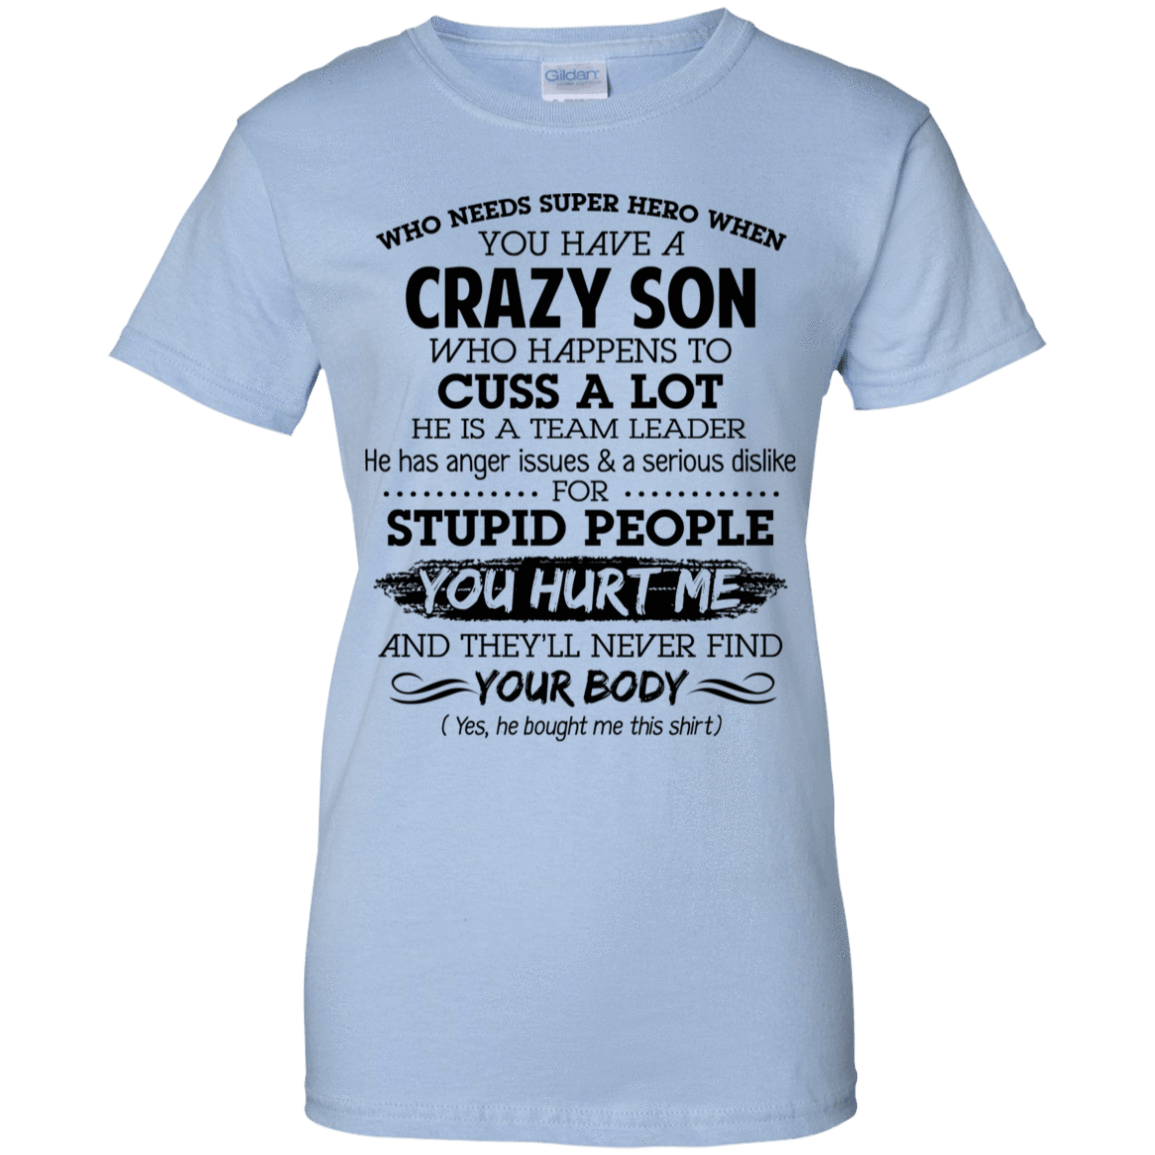 Have Crazy Son He Is A Team Leader Mother's Day Gift 939-9257-73619427-44716 - Tee Ript